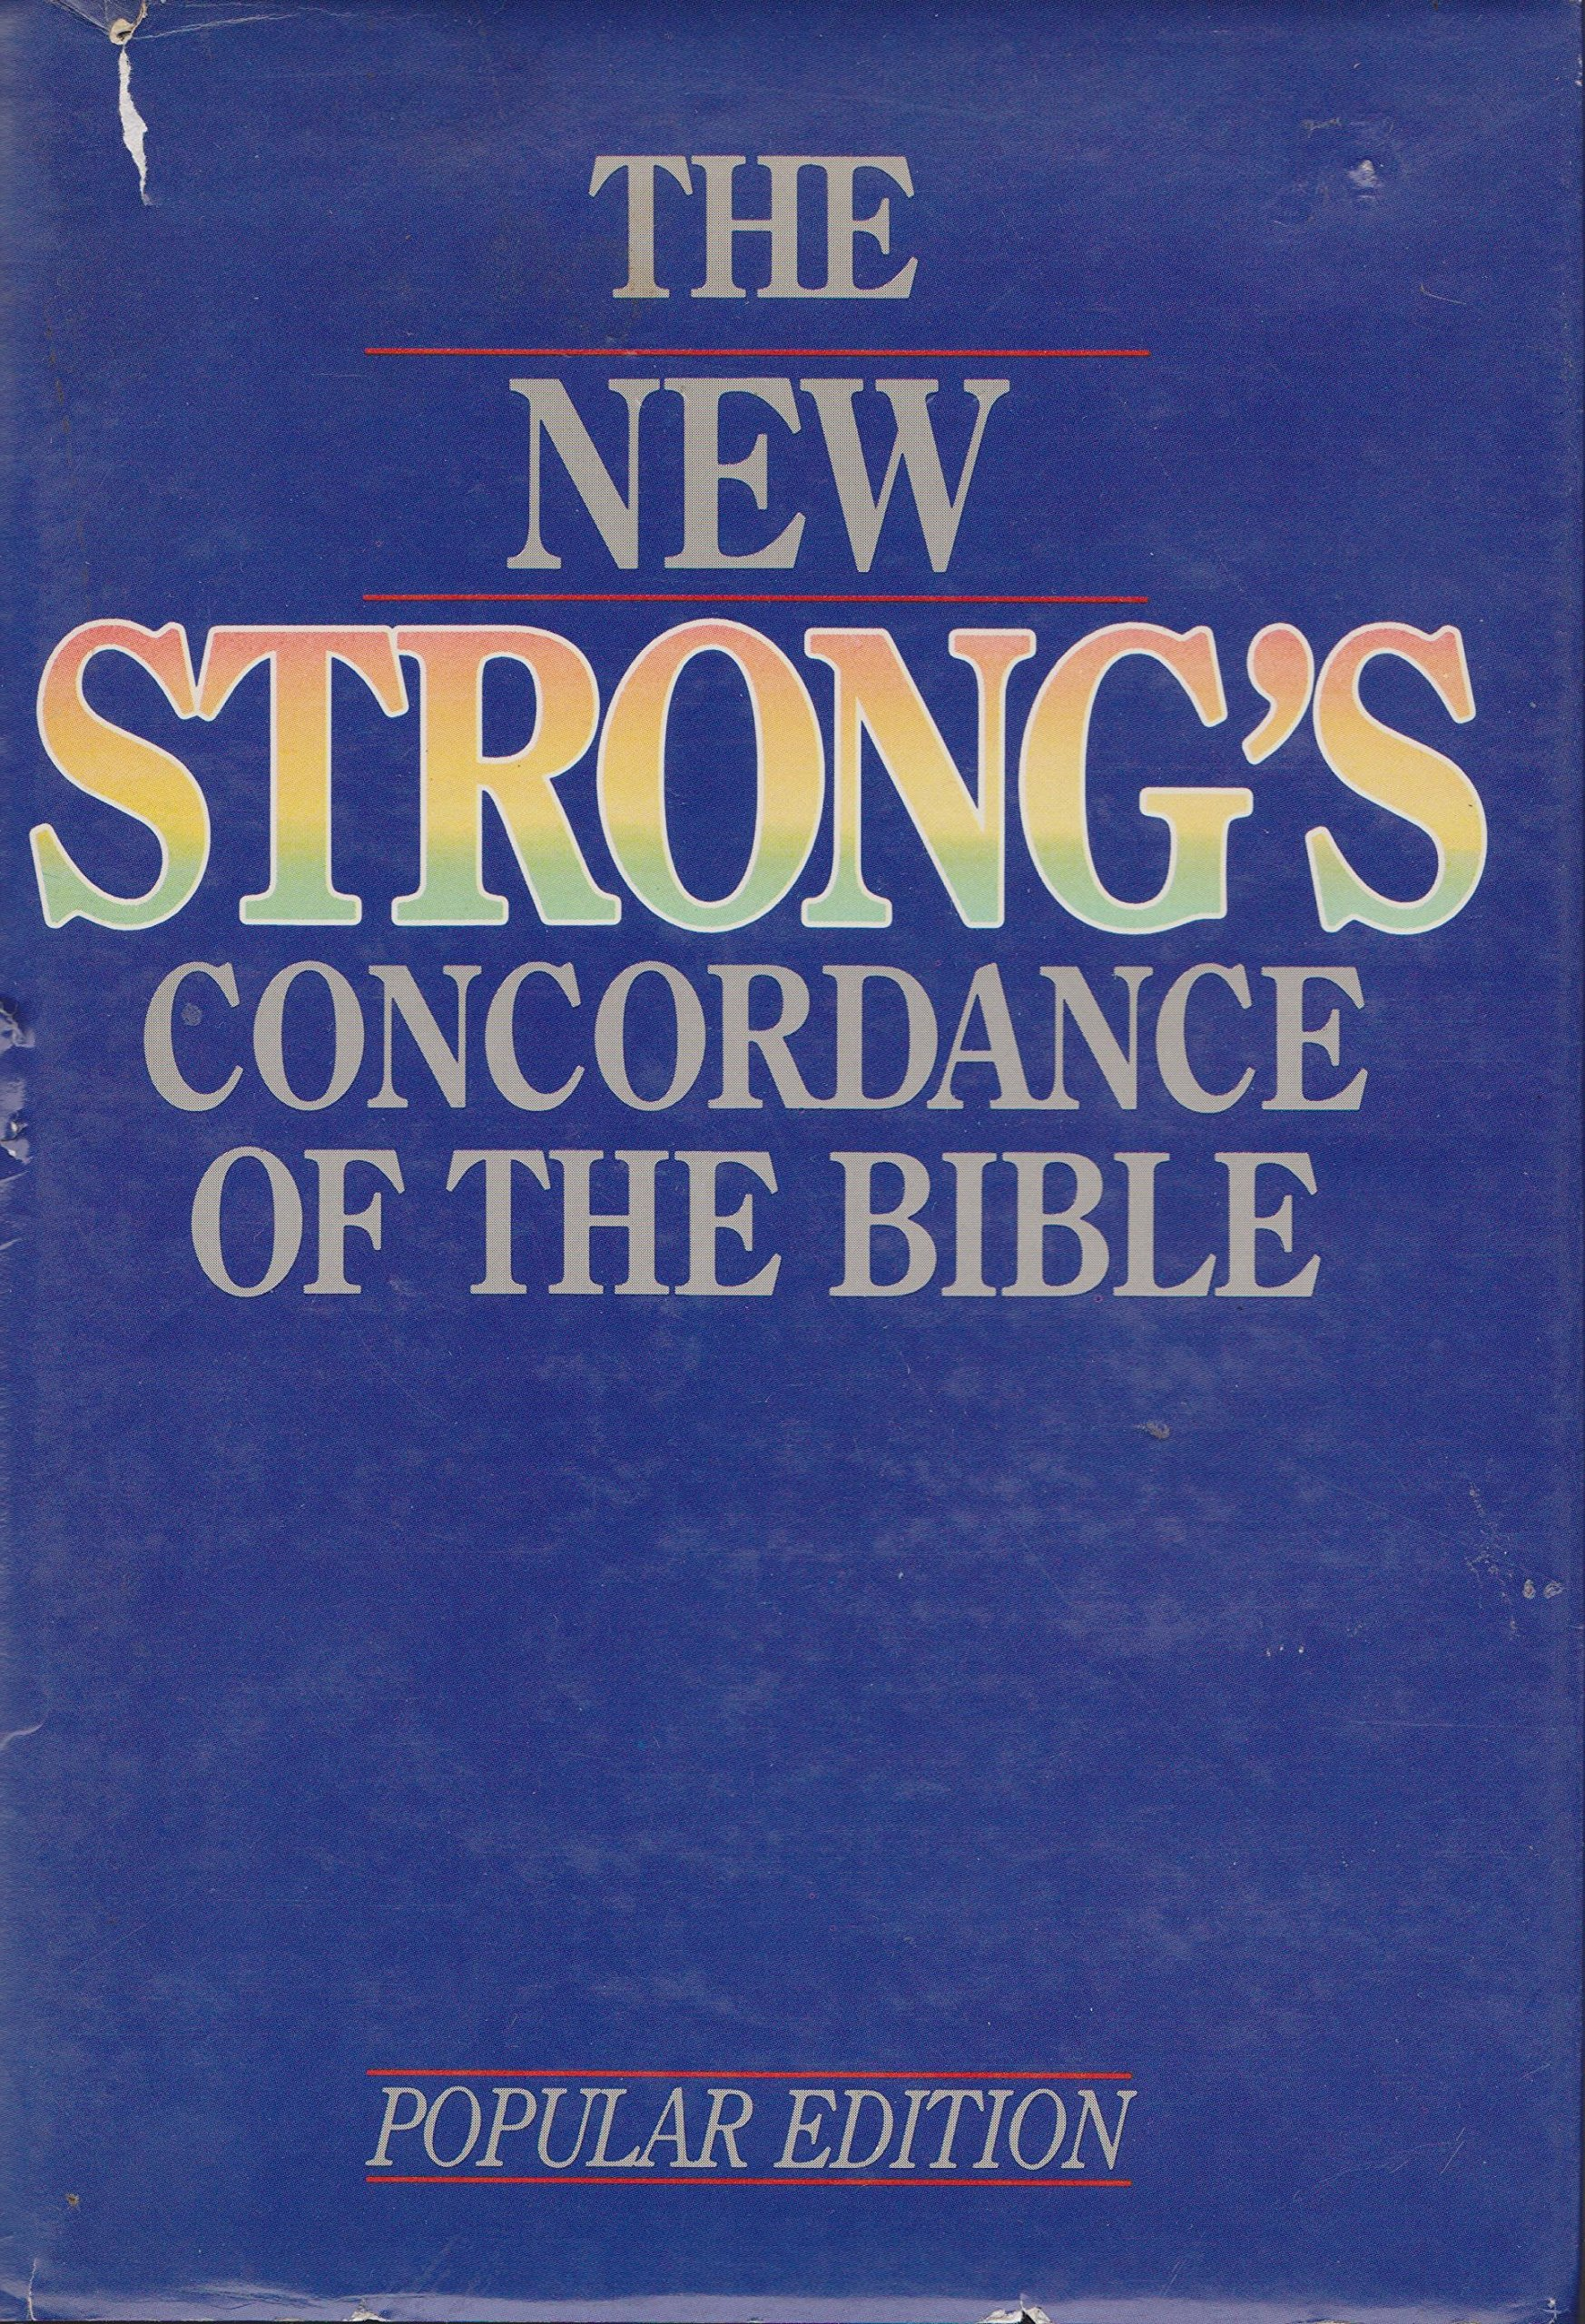 The New Strong's Concordance of the Bible: Popular Edition